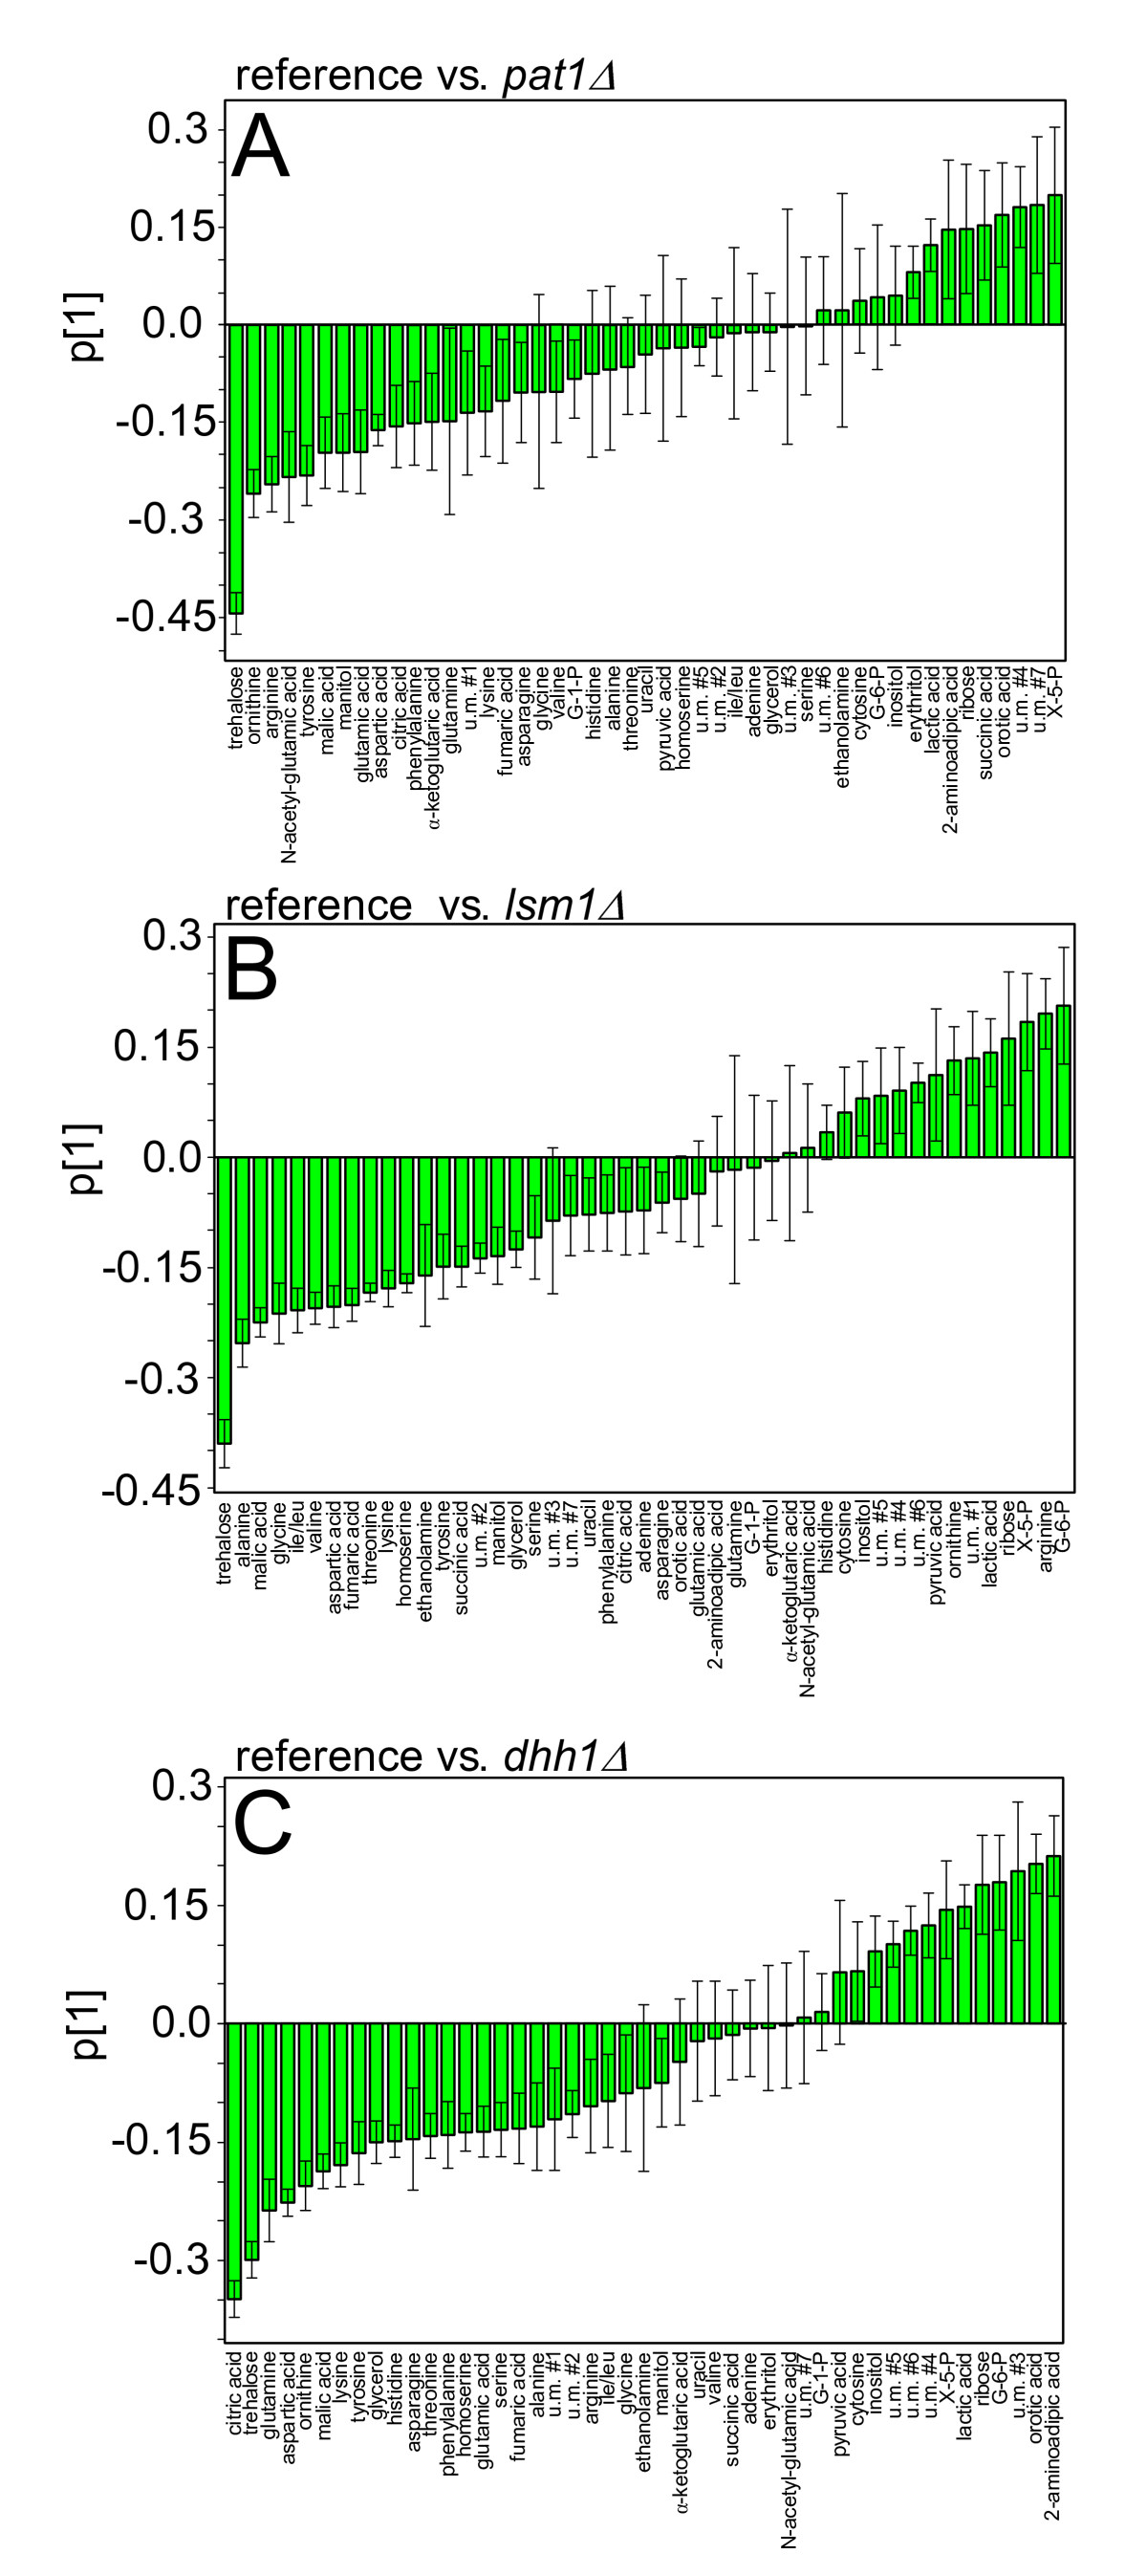 http://static-content.springer.com/image/art%3A10.1186%2F1475-2859-8-12/MediaObjects/12934_2008_Article_332_Fig6_HTML.jpg